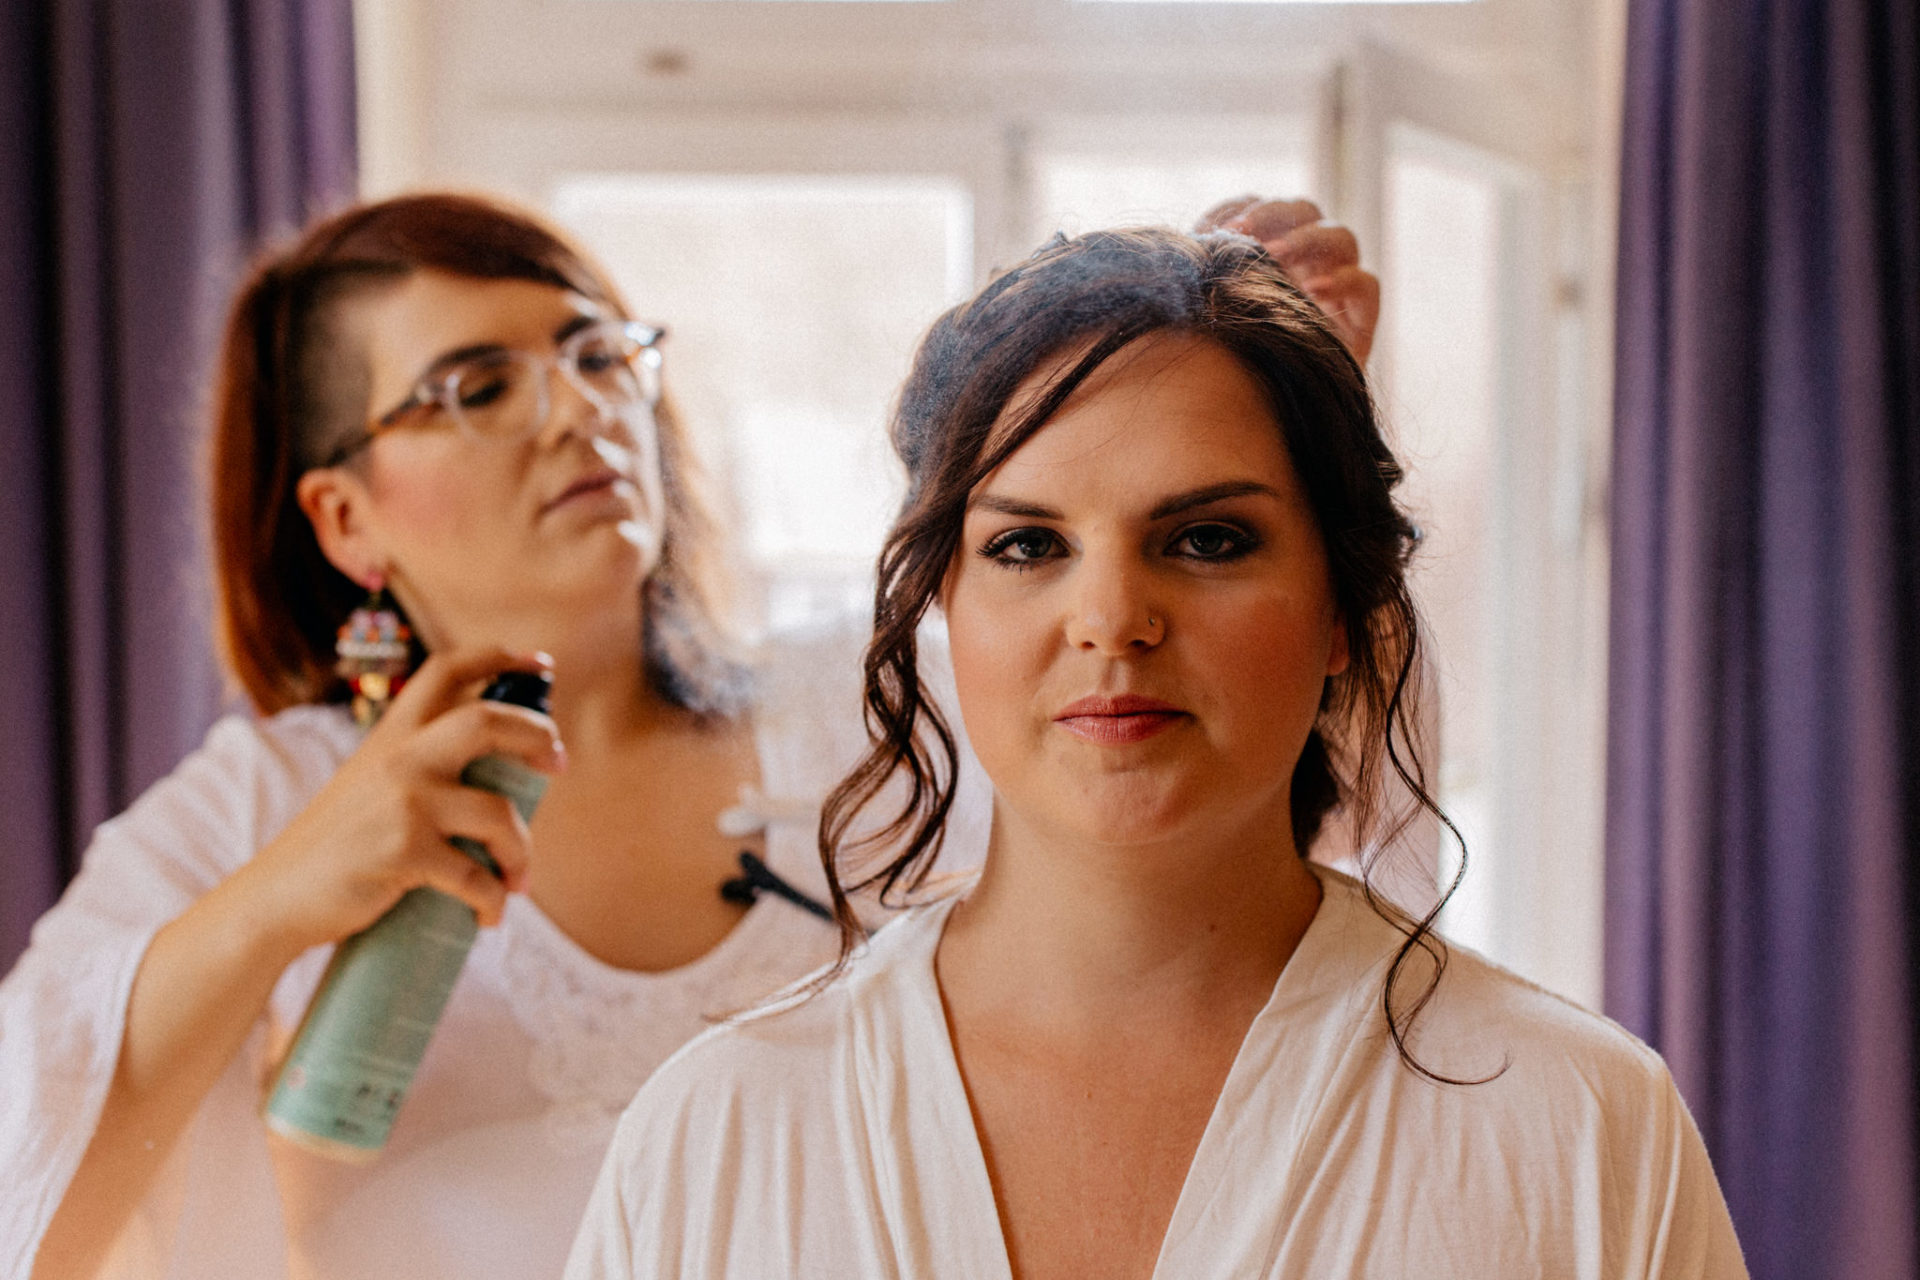 stuttgart wedding photographer-Castle Wedding Germany-Blackforest marriage-schloss heinsheim bride getting ready hairdresser